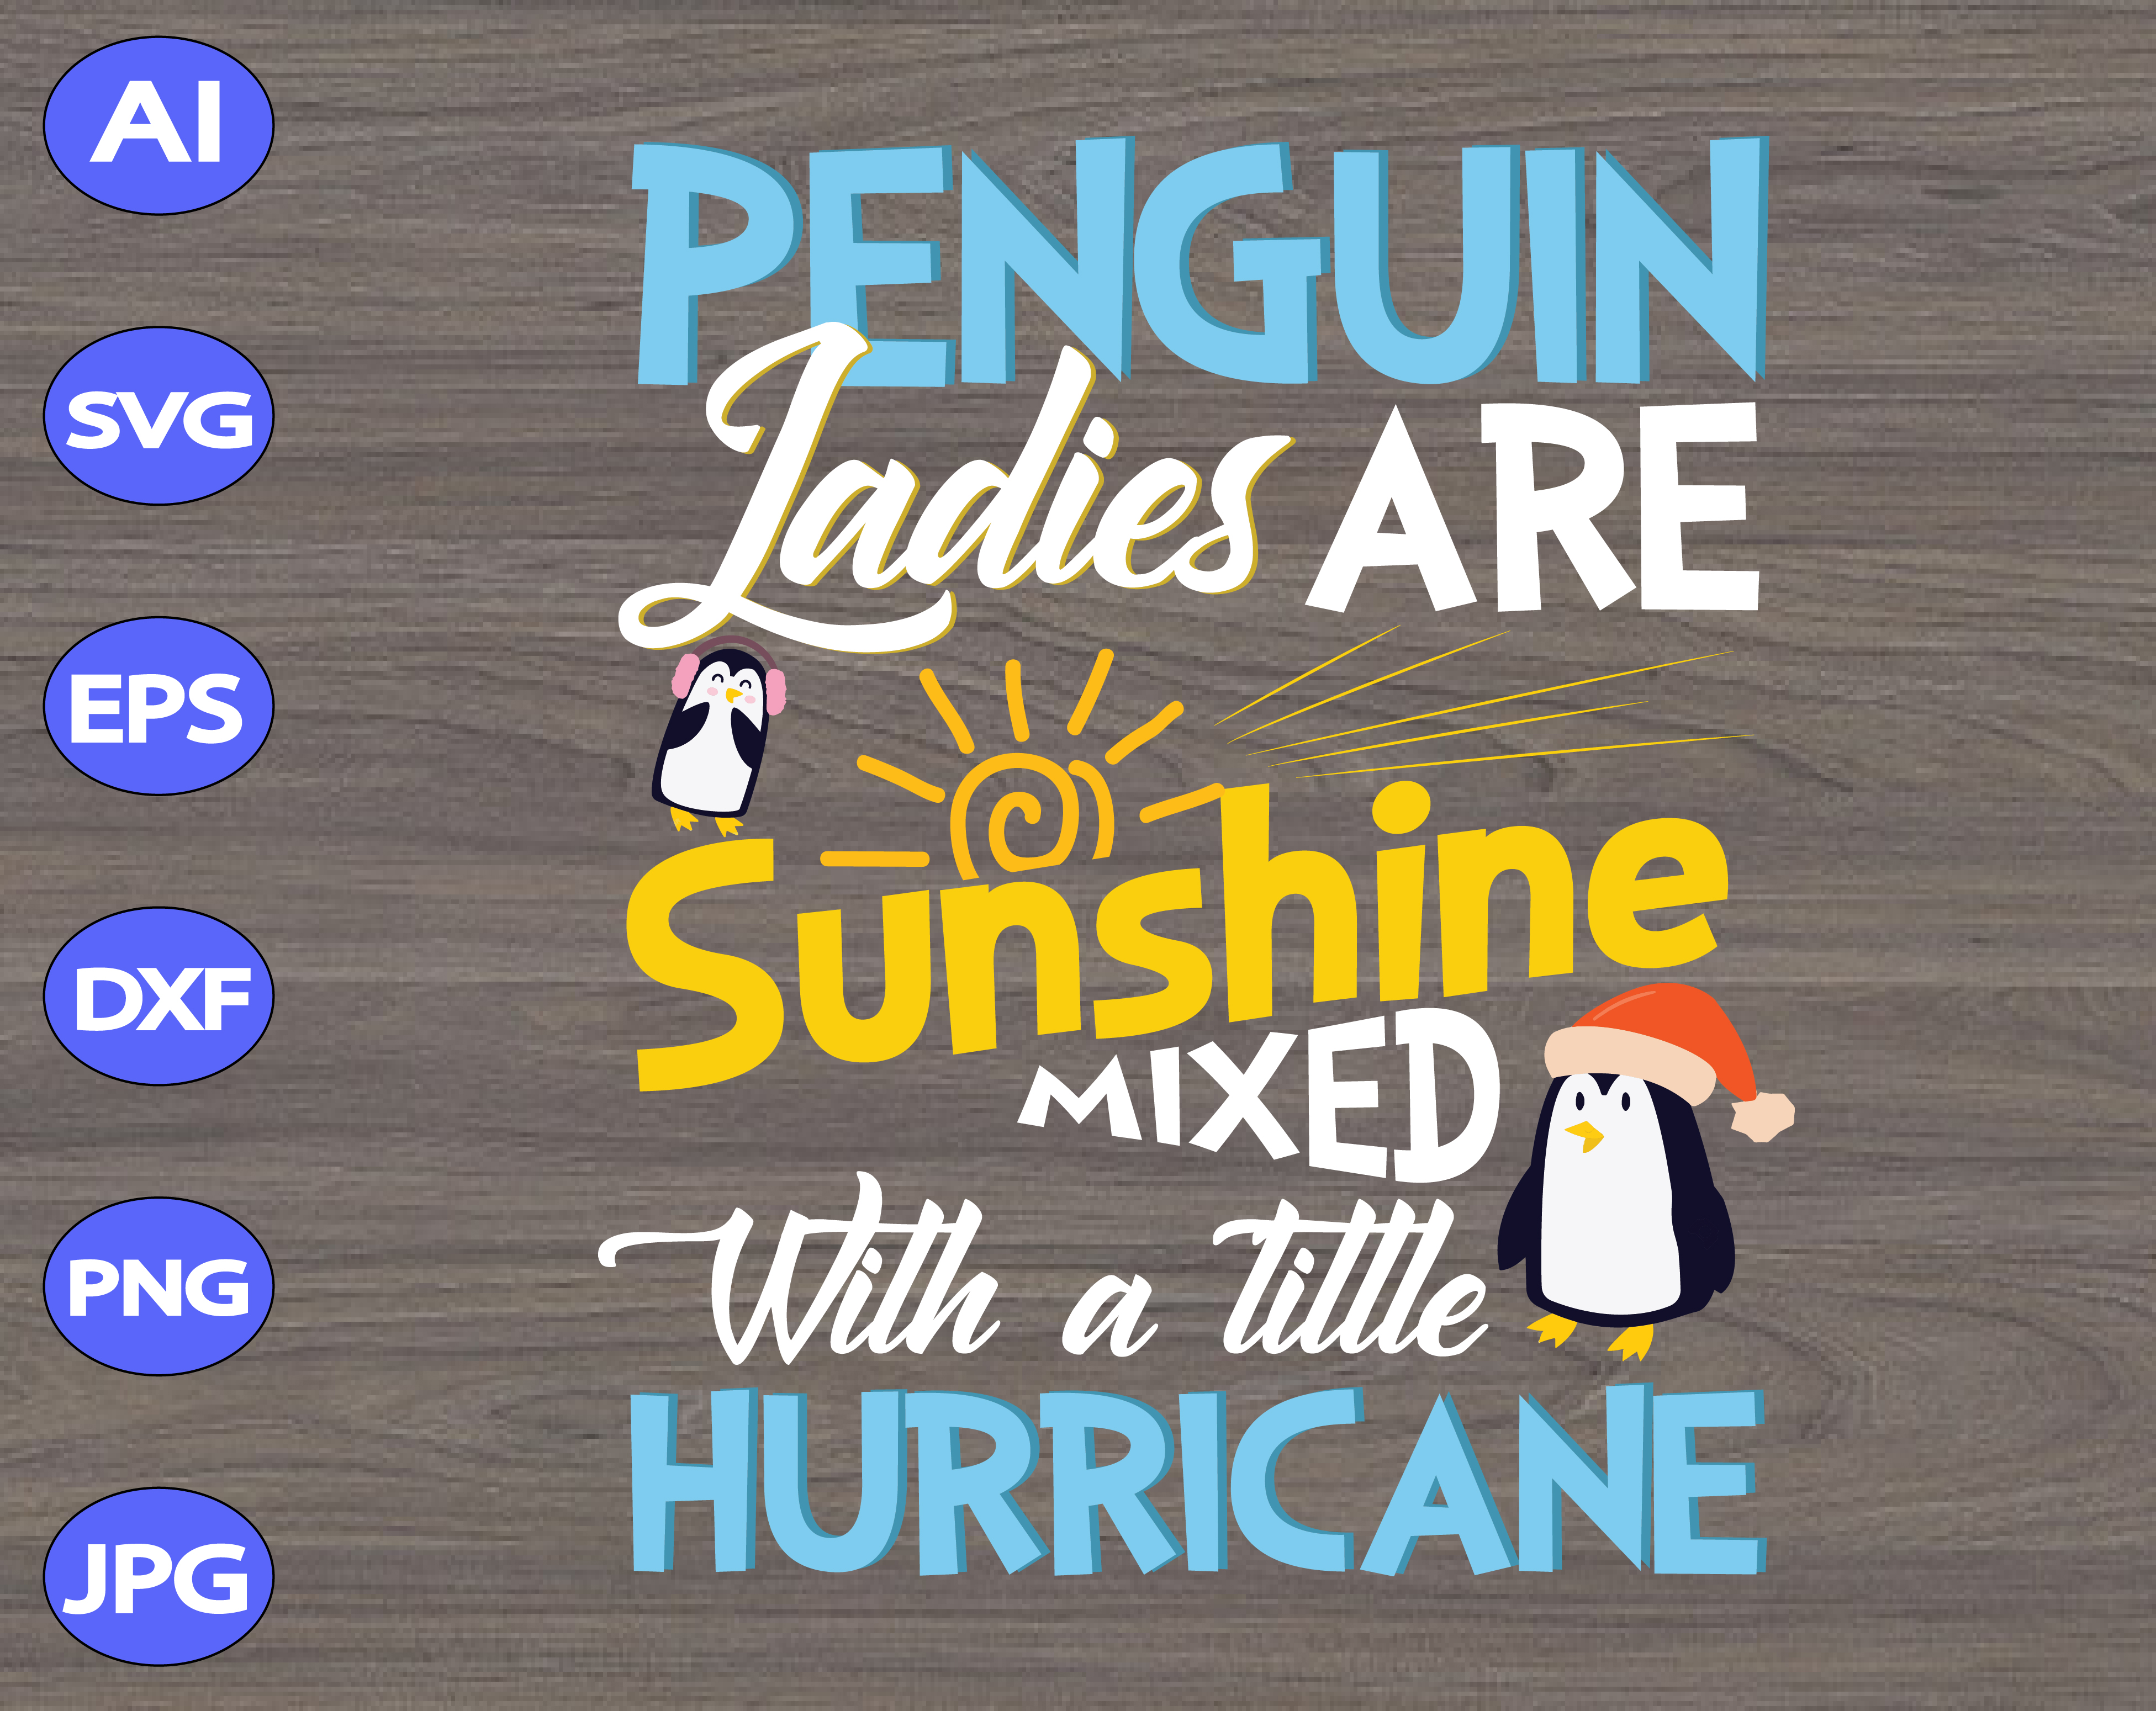 Penguin Ladies Are Sunshine Mixed With A Little Hurricane Svg Dxf Eps Png Digital Download Designbtf Com